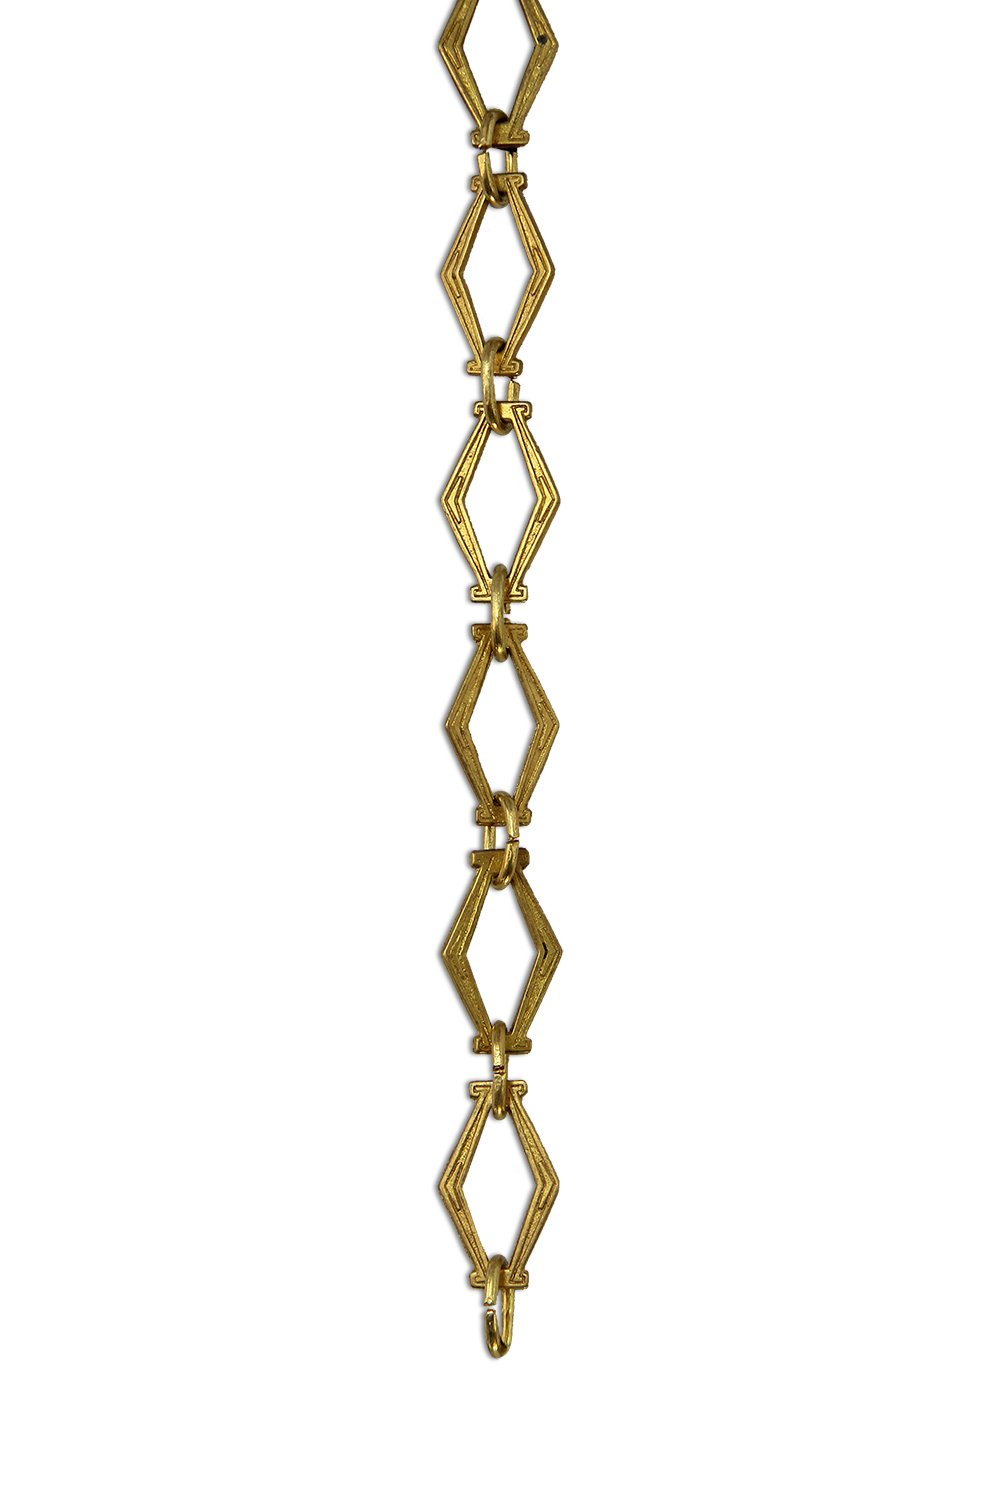 RCH Hardware CH-22-AD Decorative Acid Dipped Solid Brass Chain for Hanging, Lighting - Hexagonal Design Unwelded Links (1 Foot)